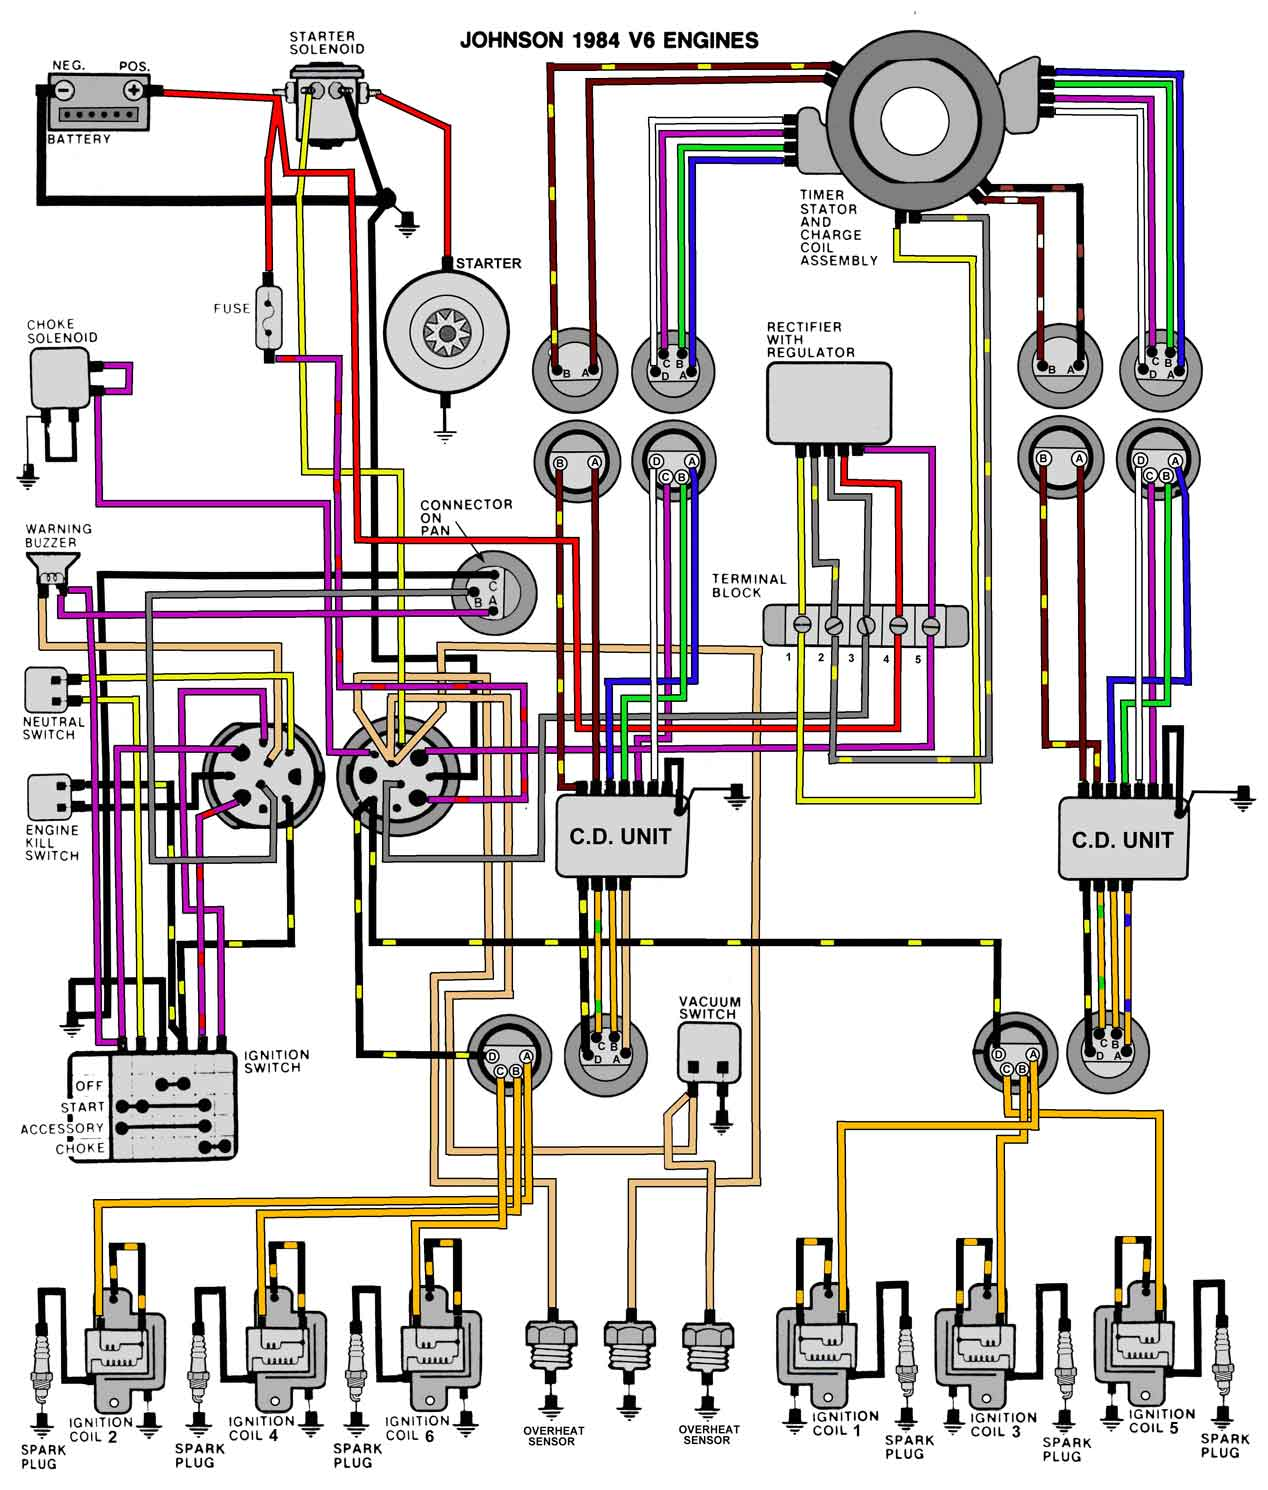 84_V6 boat motor wiring diagram small boat wiring diagram \u2022 wiring Boat Ignition Switch Wiring Diagram at crackthecode.co